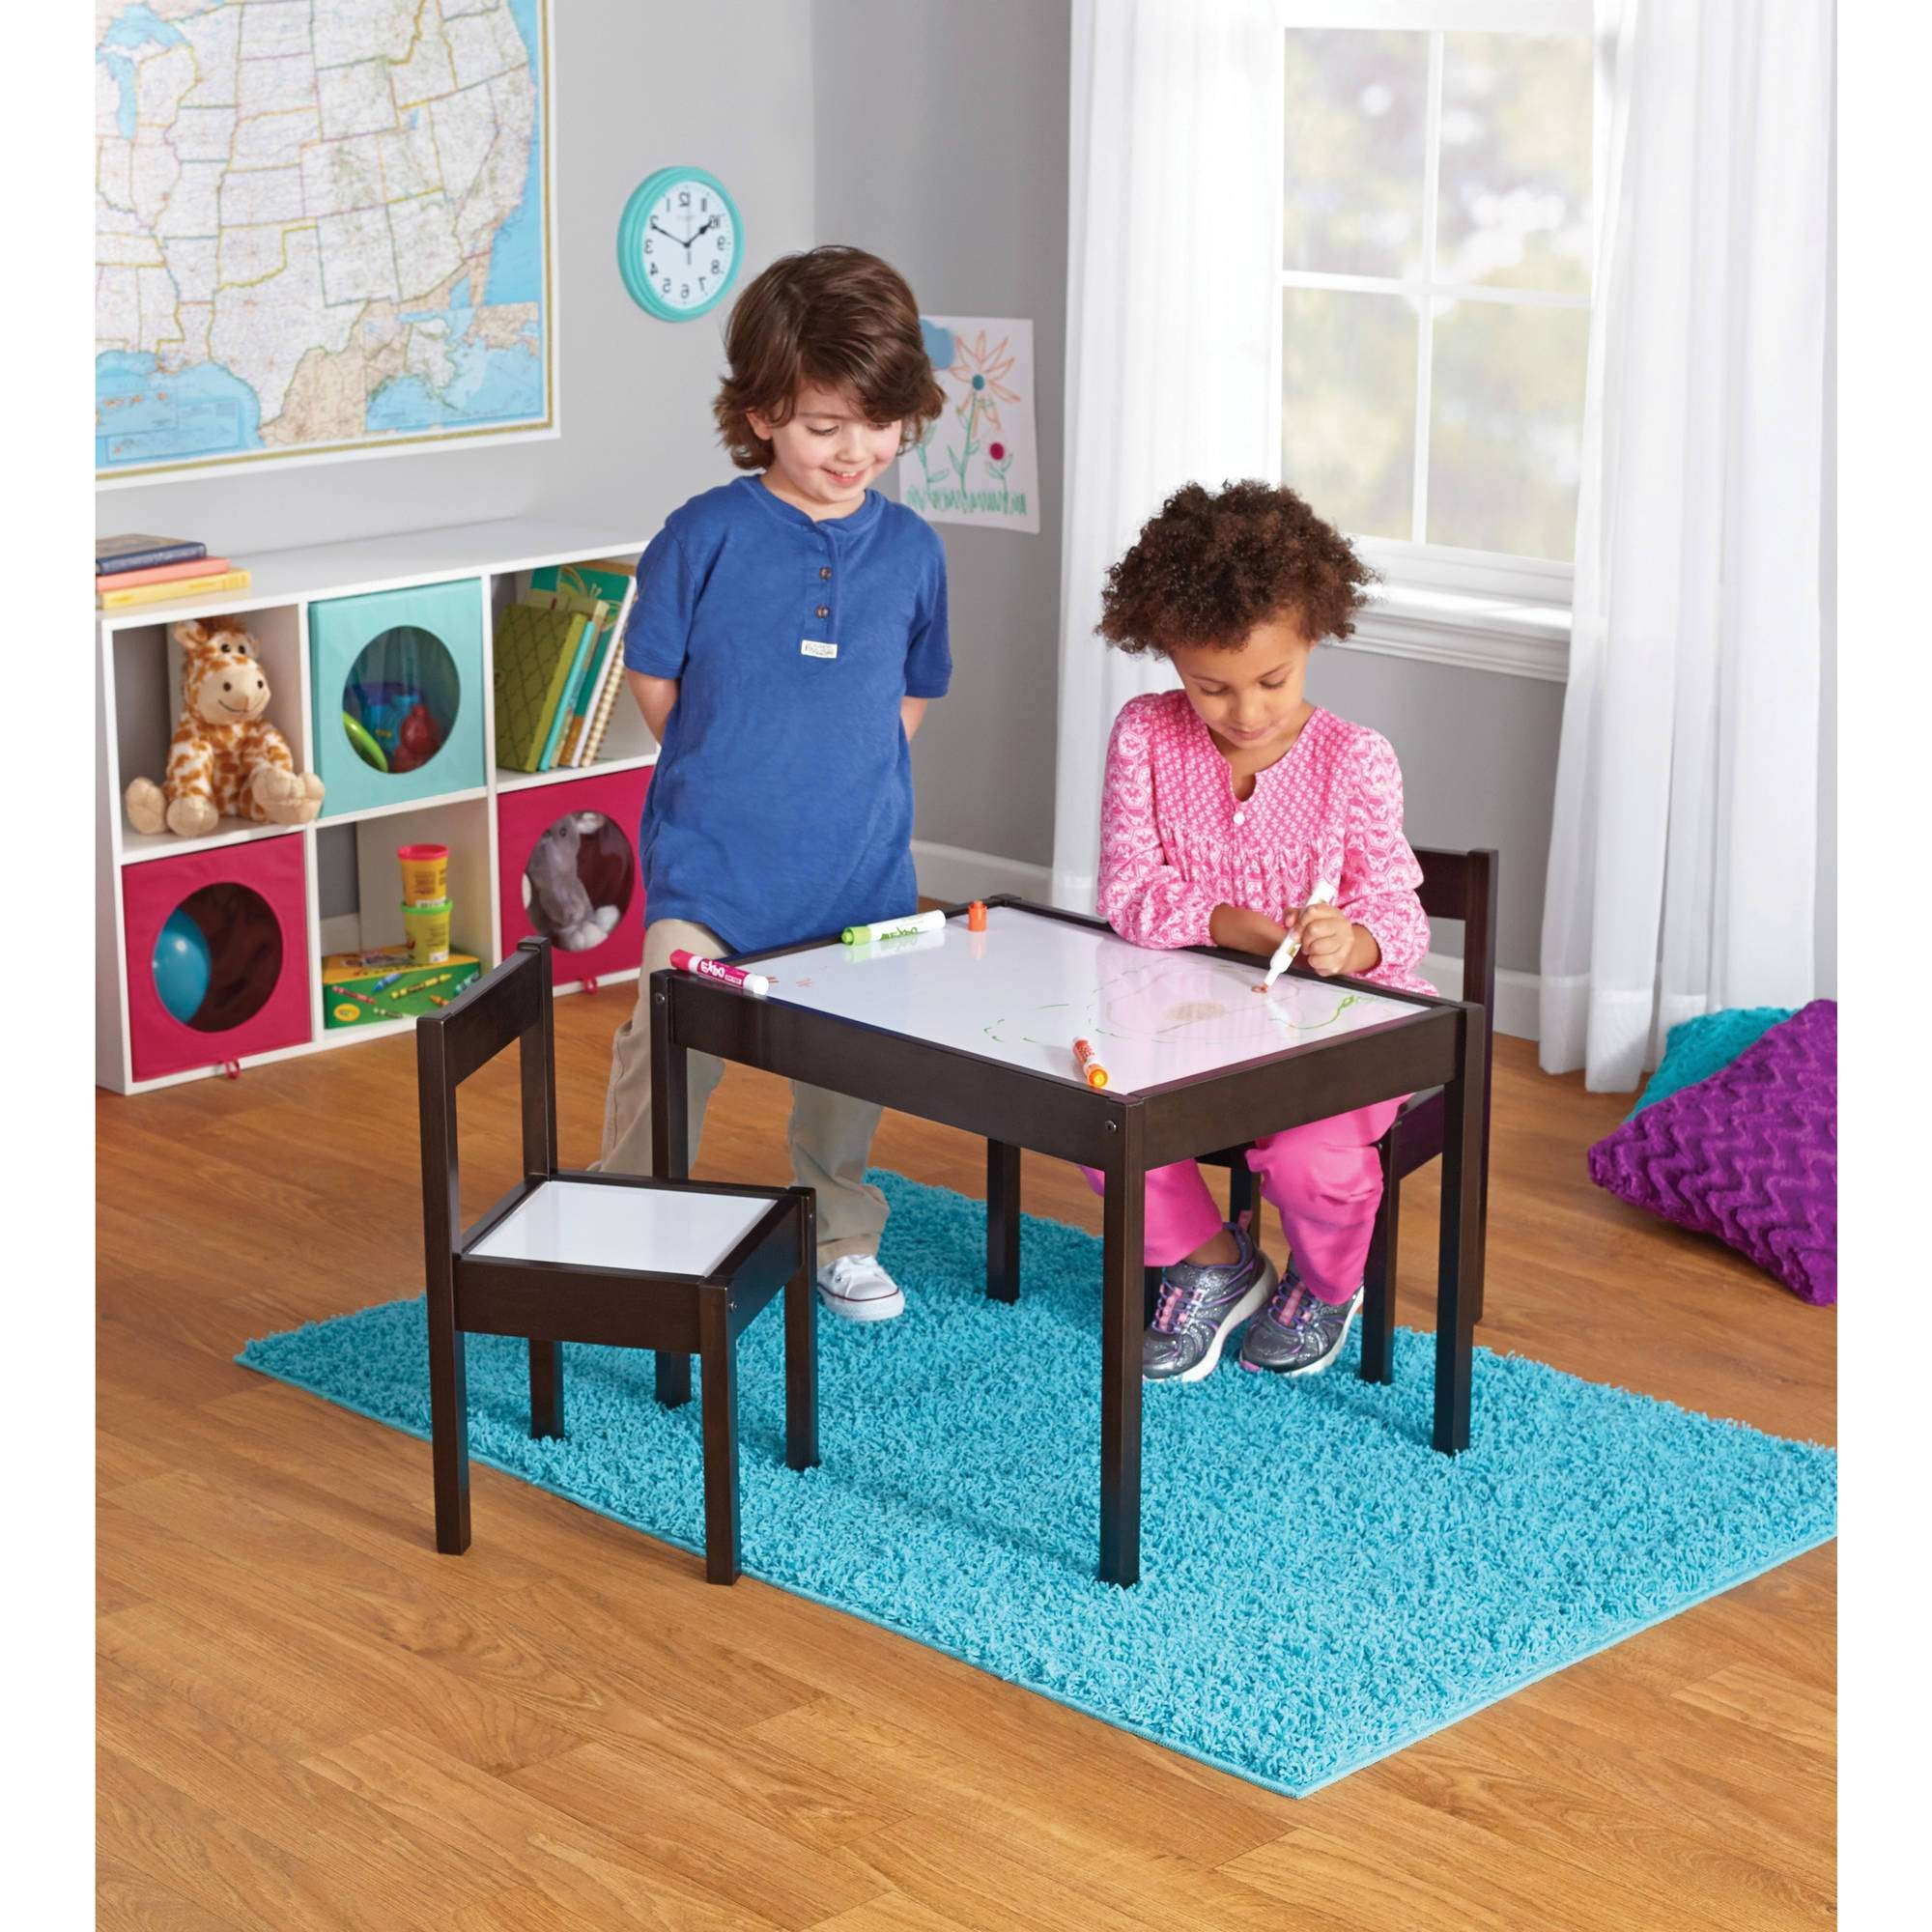 3 Piece Children's Table And Chairs, Espresso – Walmart Intended For Preferred Kids Coffee Tables (View 2 of 20)